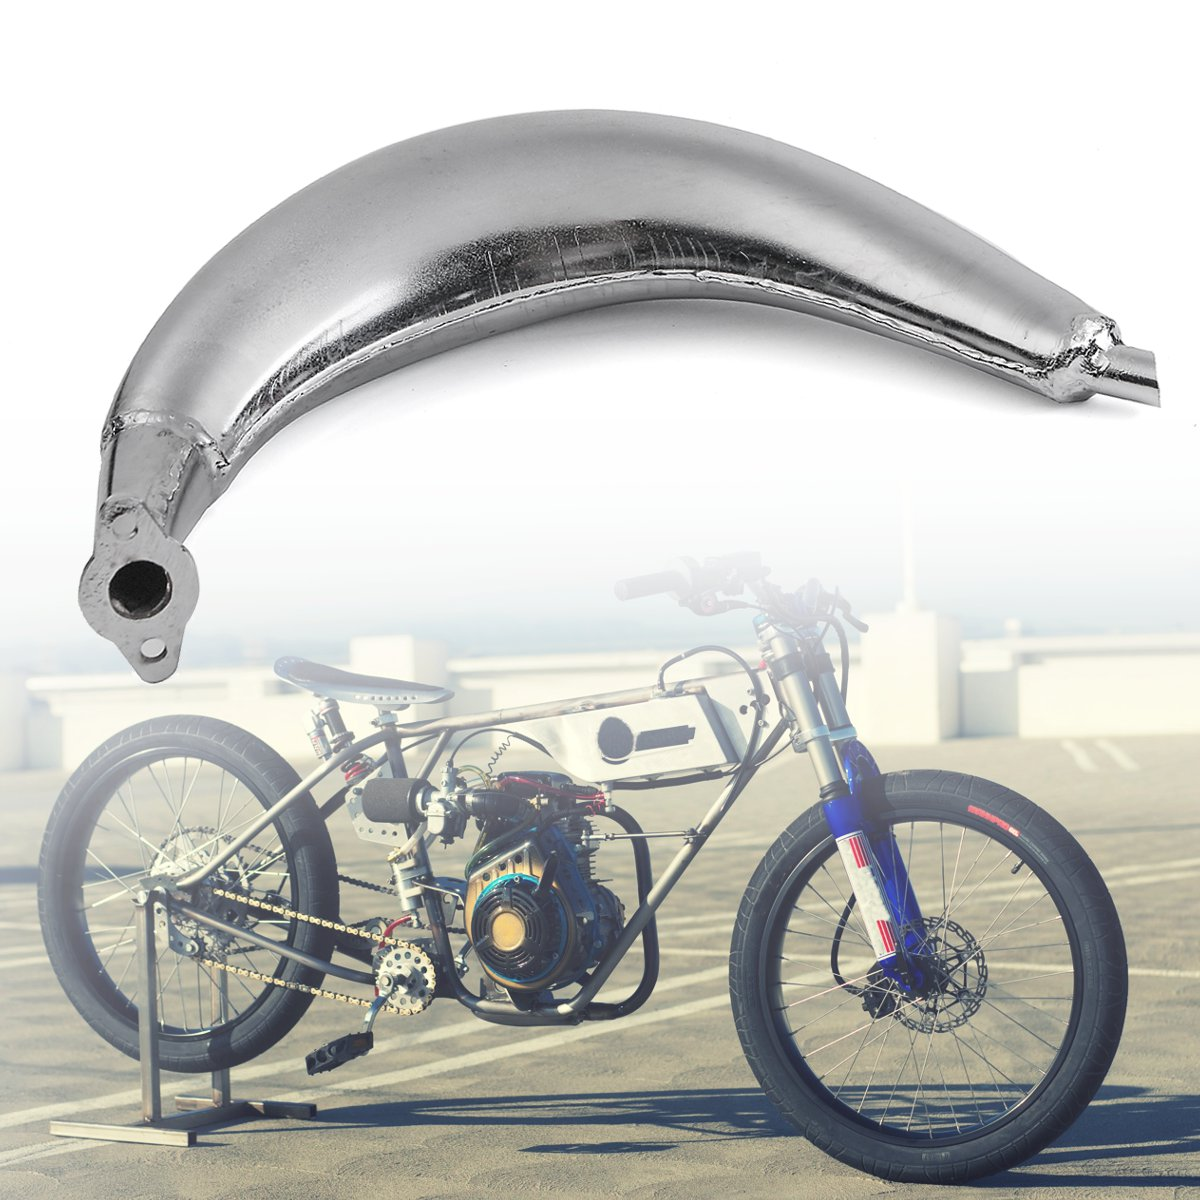 Chrome Muffler Exhaust Pipe For  80cc 66cc 49cc Motorized Bicycle Engine Bike Cyc  support wholesale retail